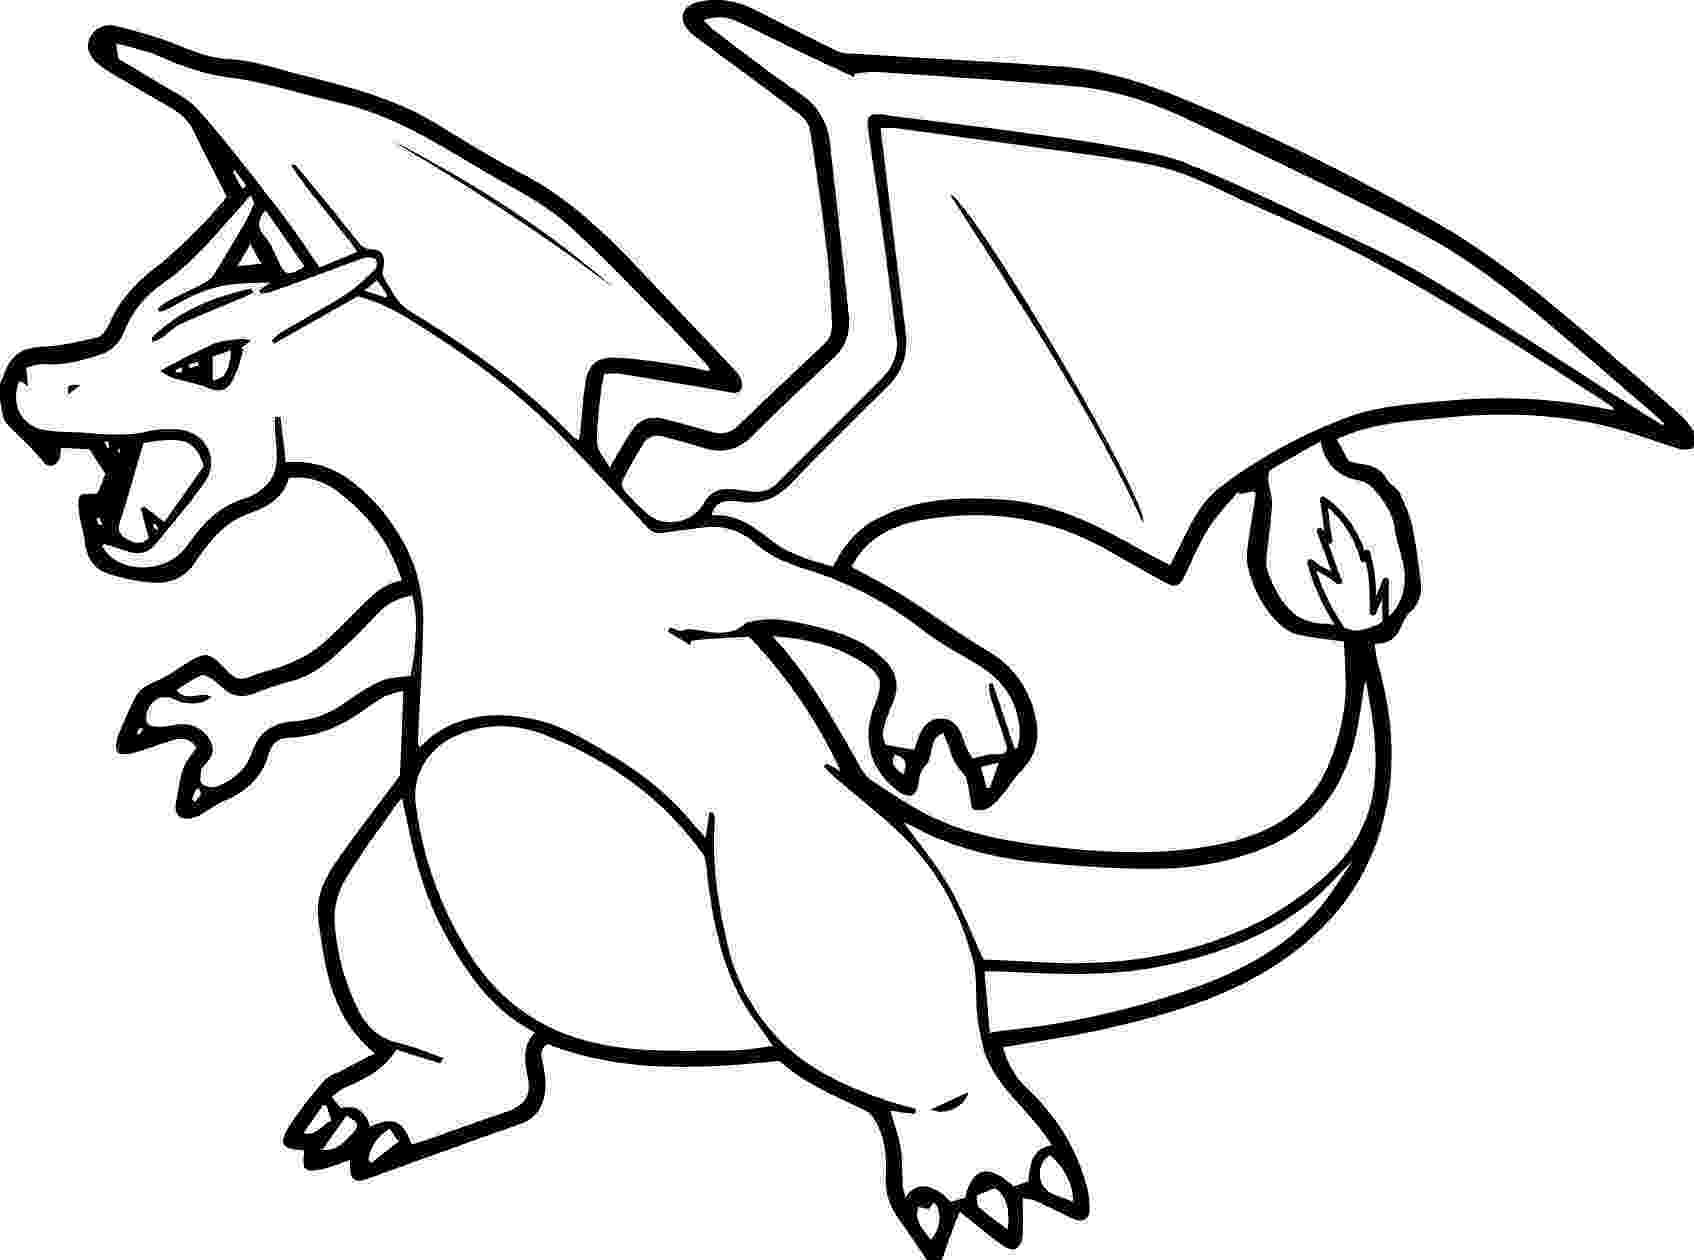 coloring pages for pokemon pokemon coloring pages join your favorite pokemon on an pages for coloring pokemon